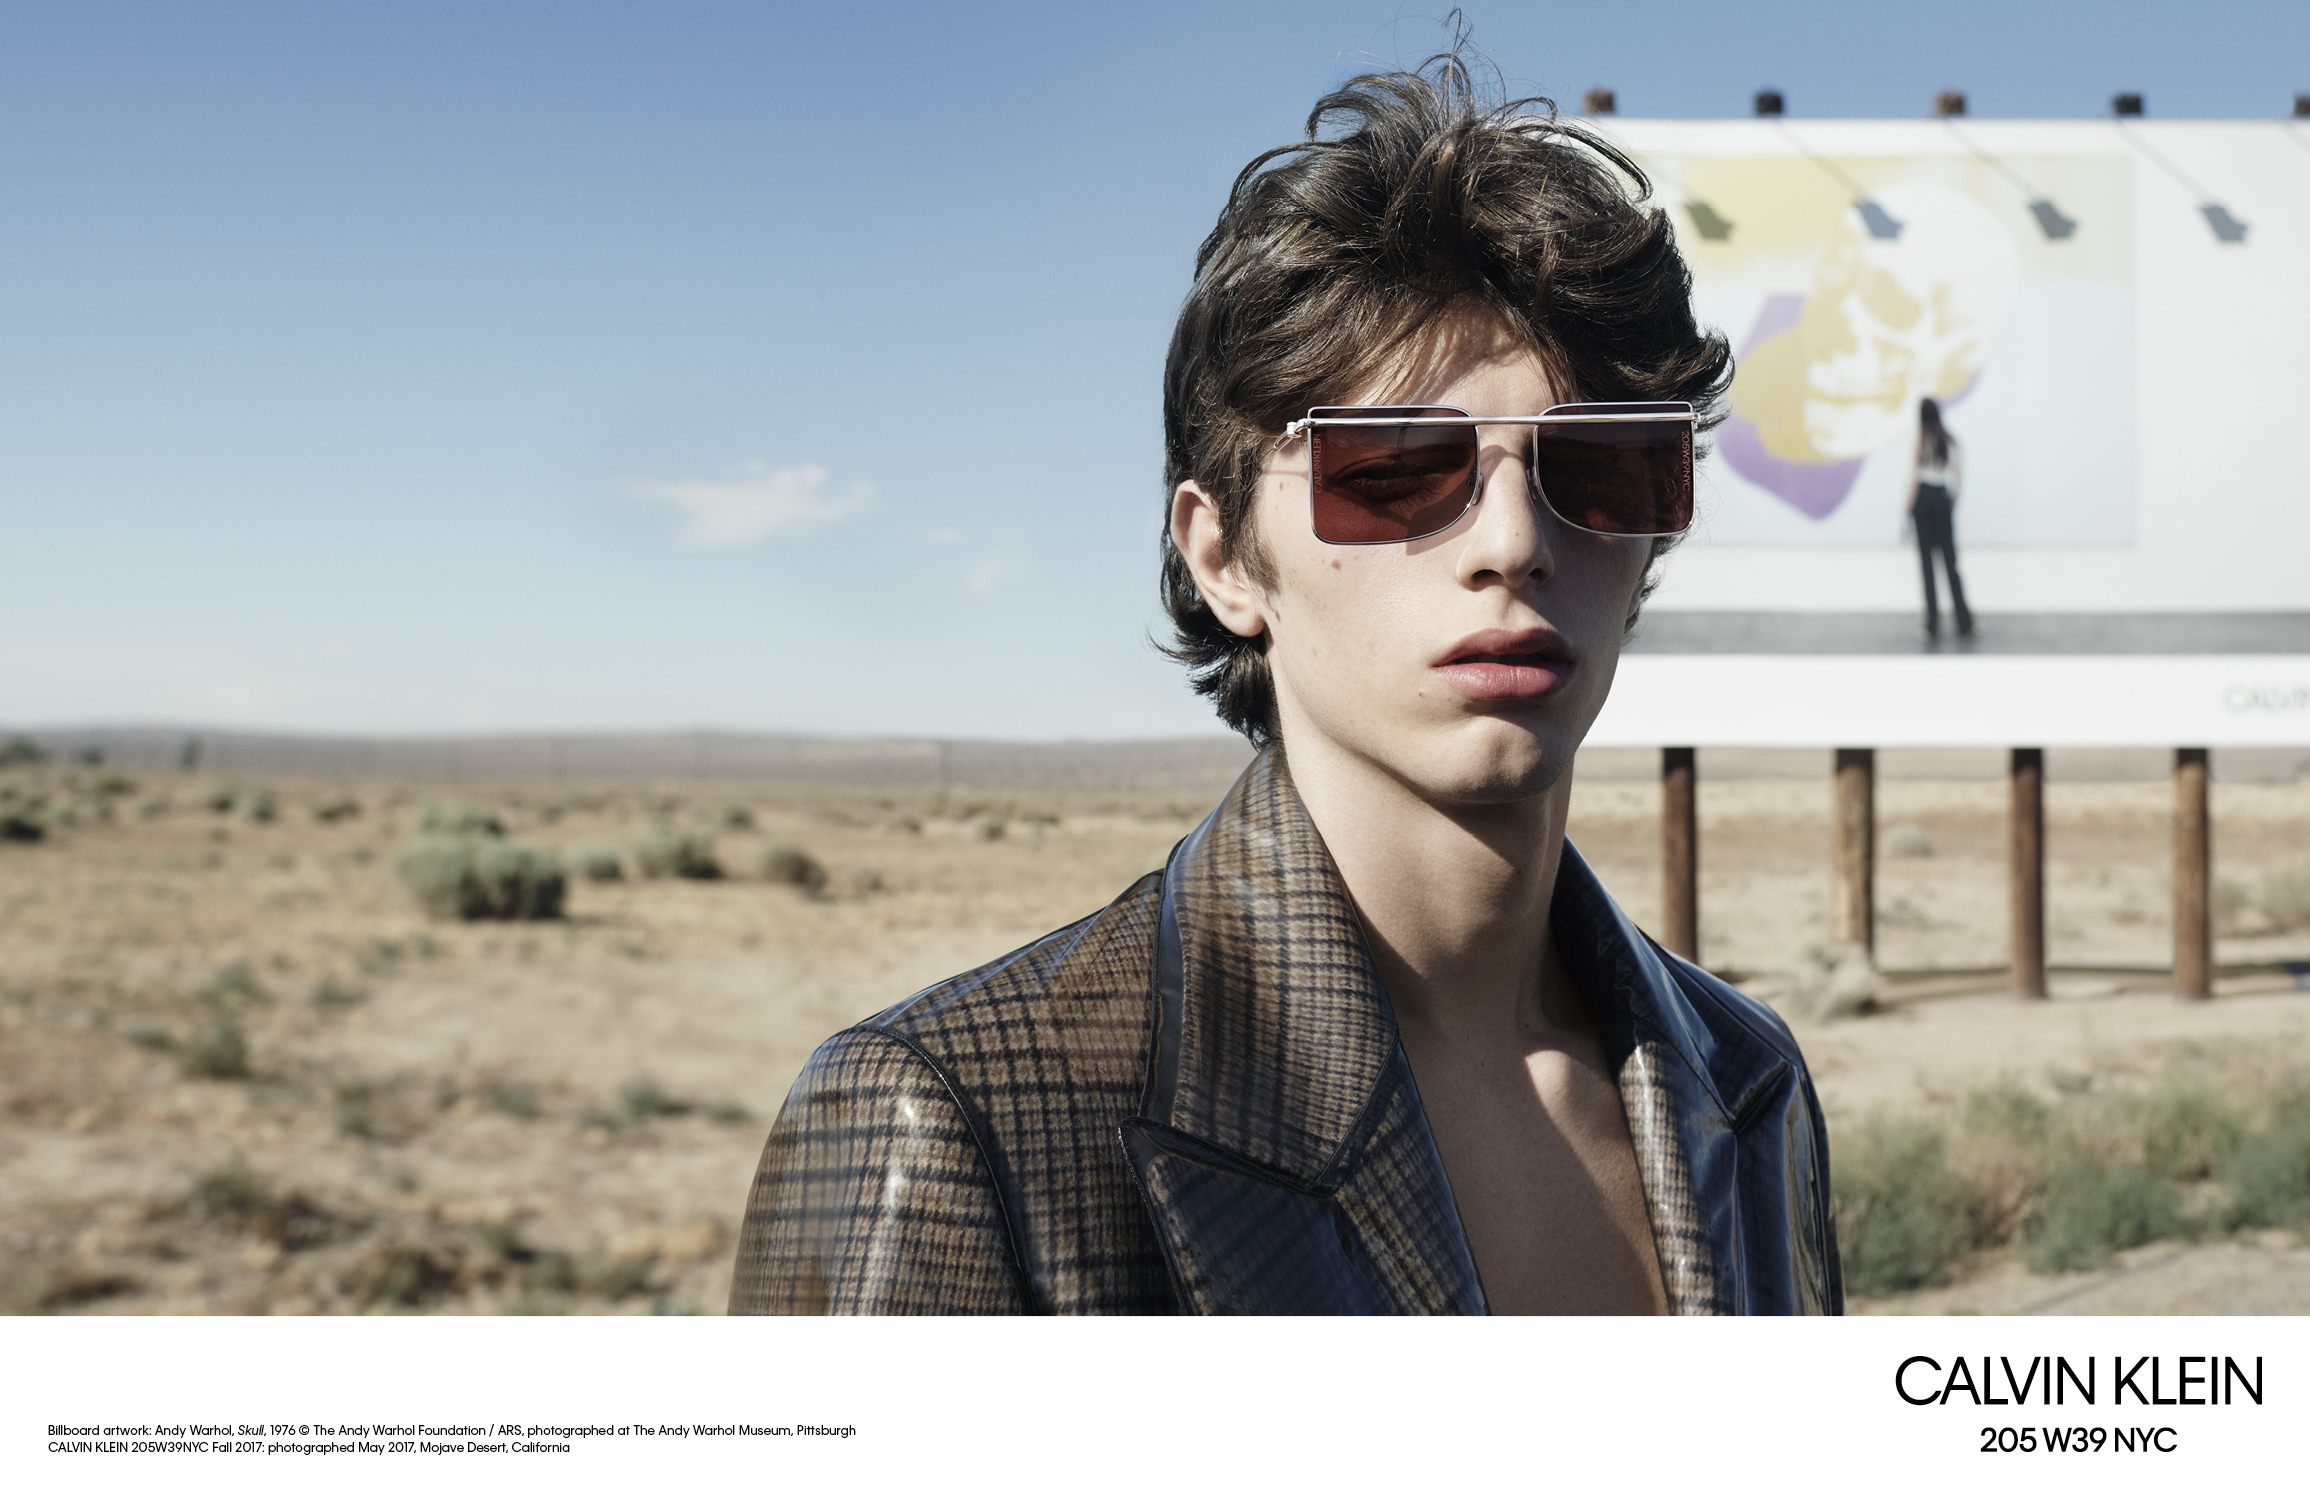 calvin-klein-205w39nyc-f17-campaign_ph_willy-vanderperre-22